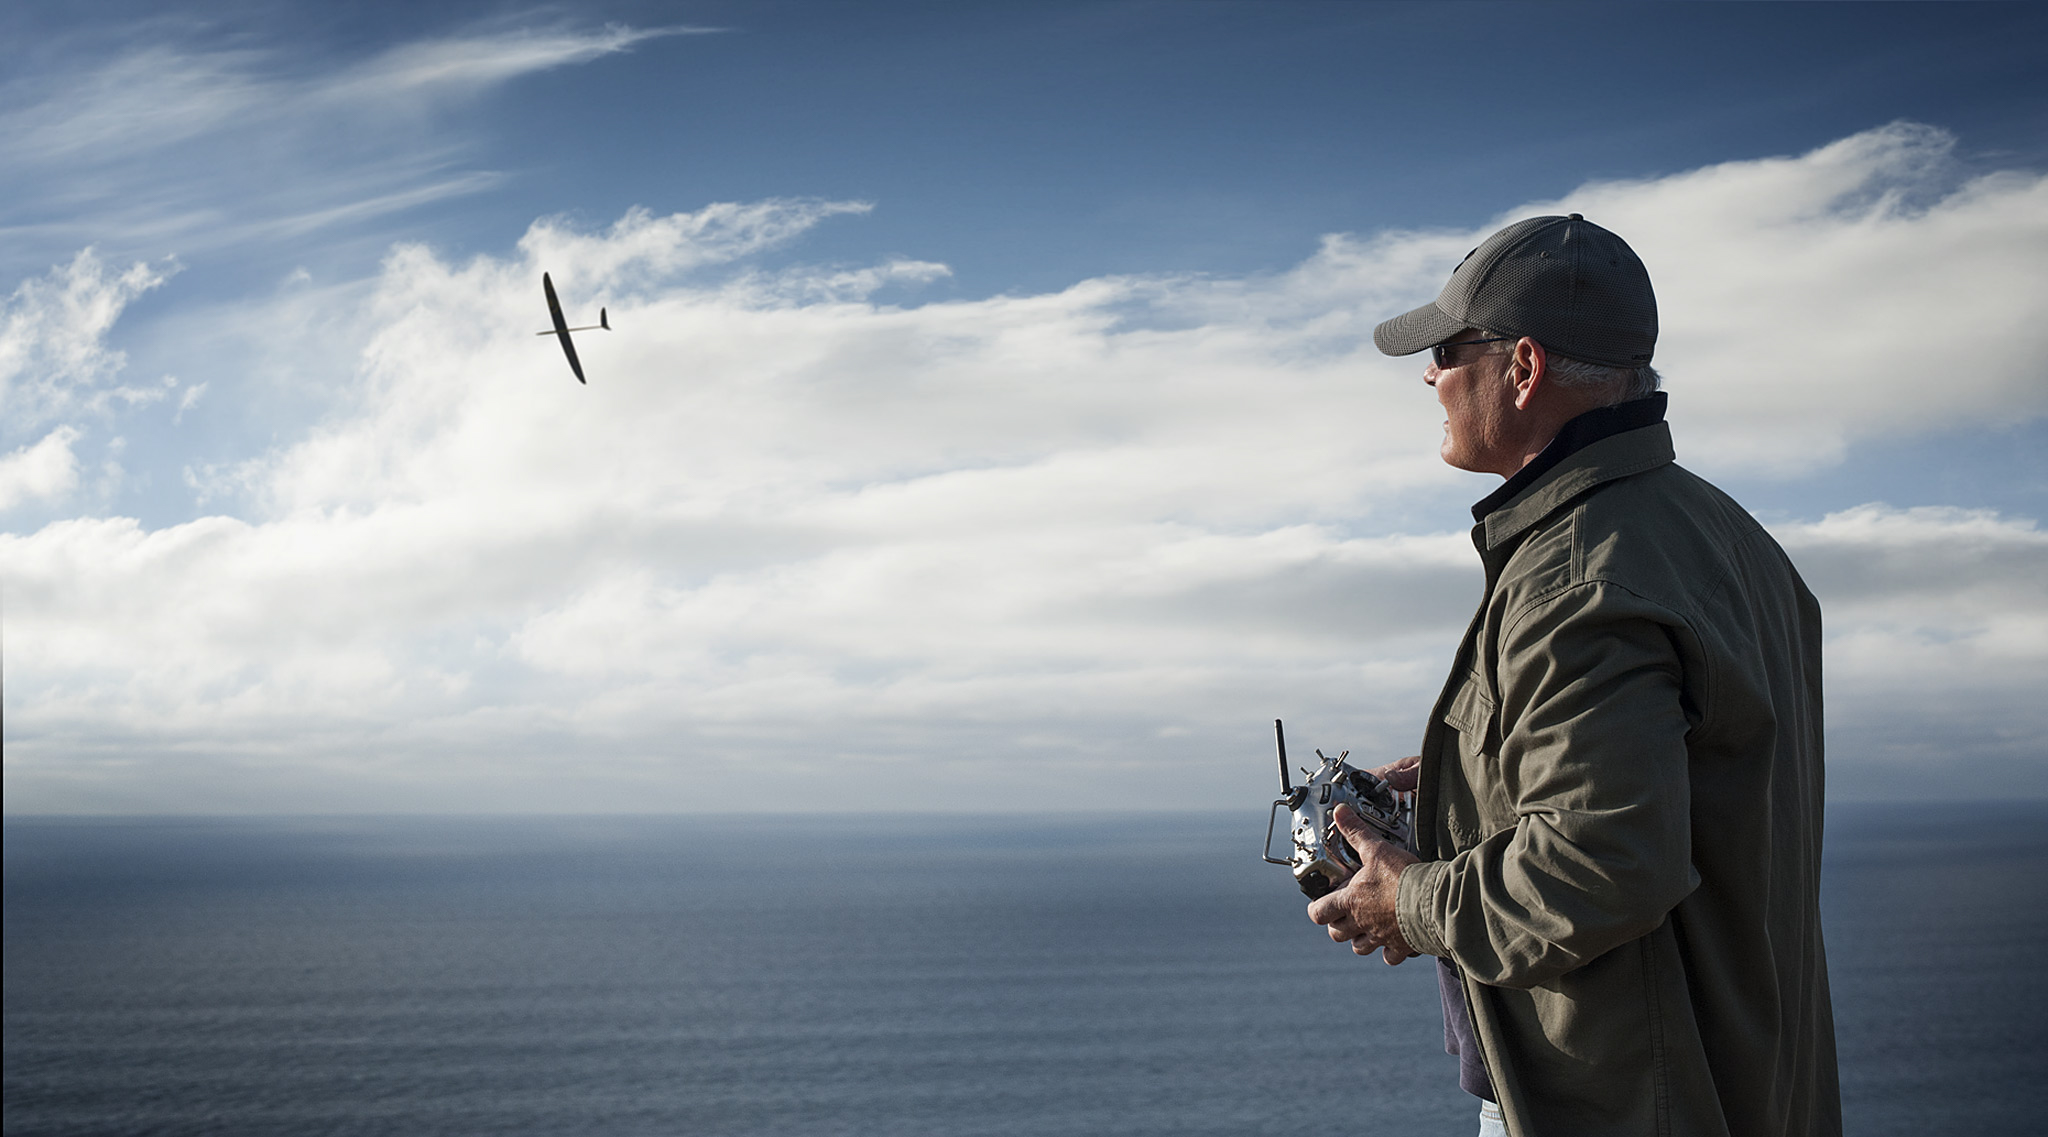 RC Plane flying above the Pacific Ocean